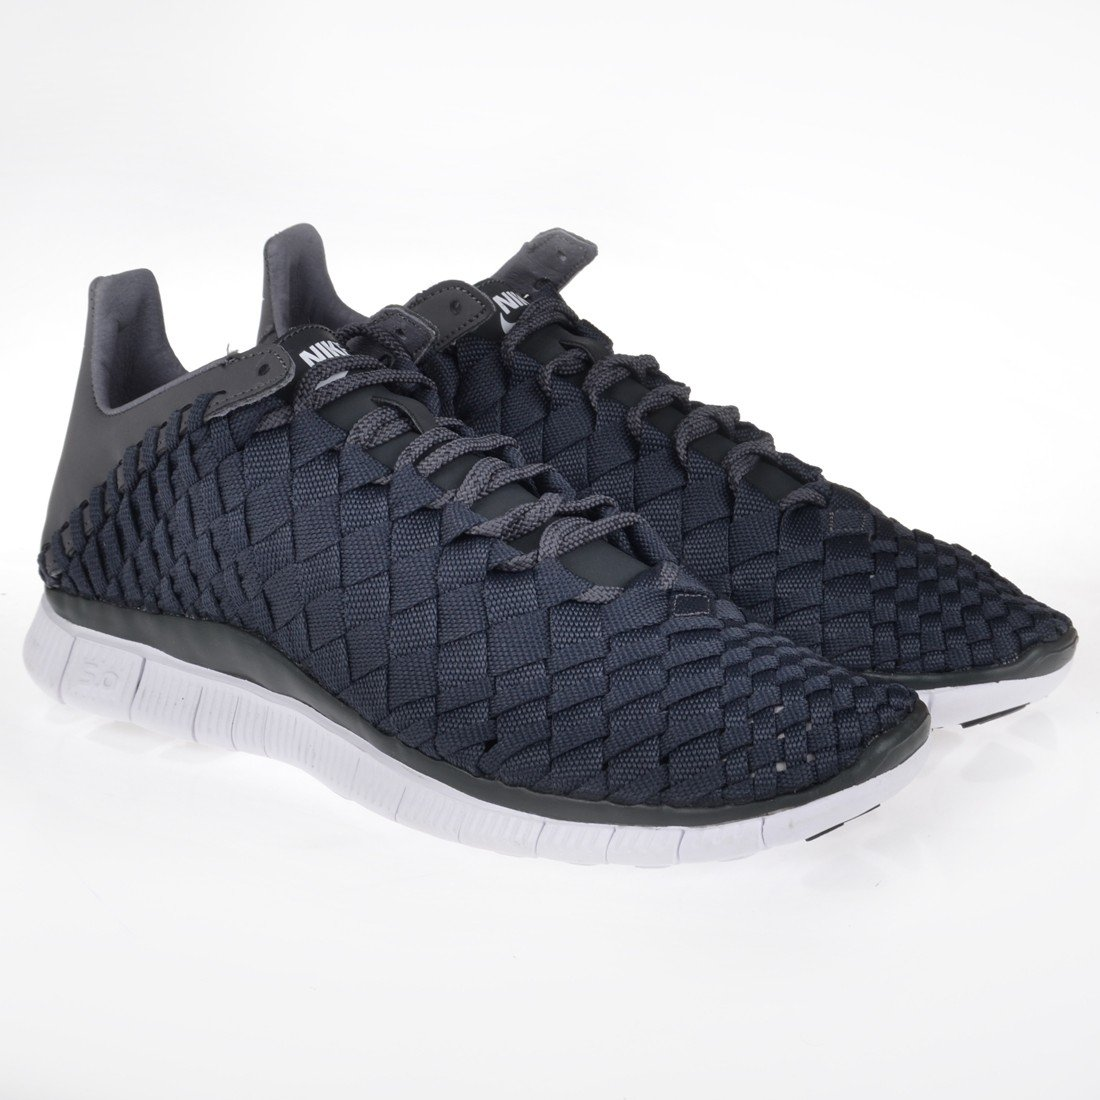 eab81131043f Nike Free Inneva Woven - Anthracite Dark Grey White Trainer Size 7.5 UK   Amazon.co.uk  Shoes   Bags